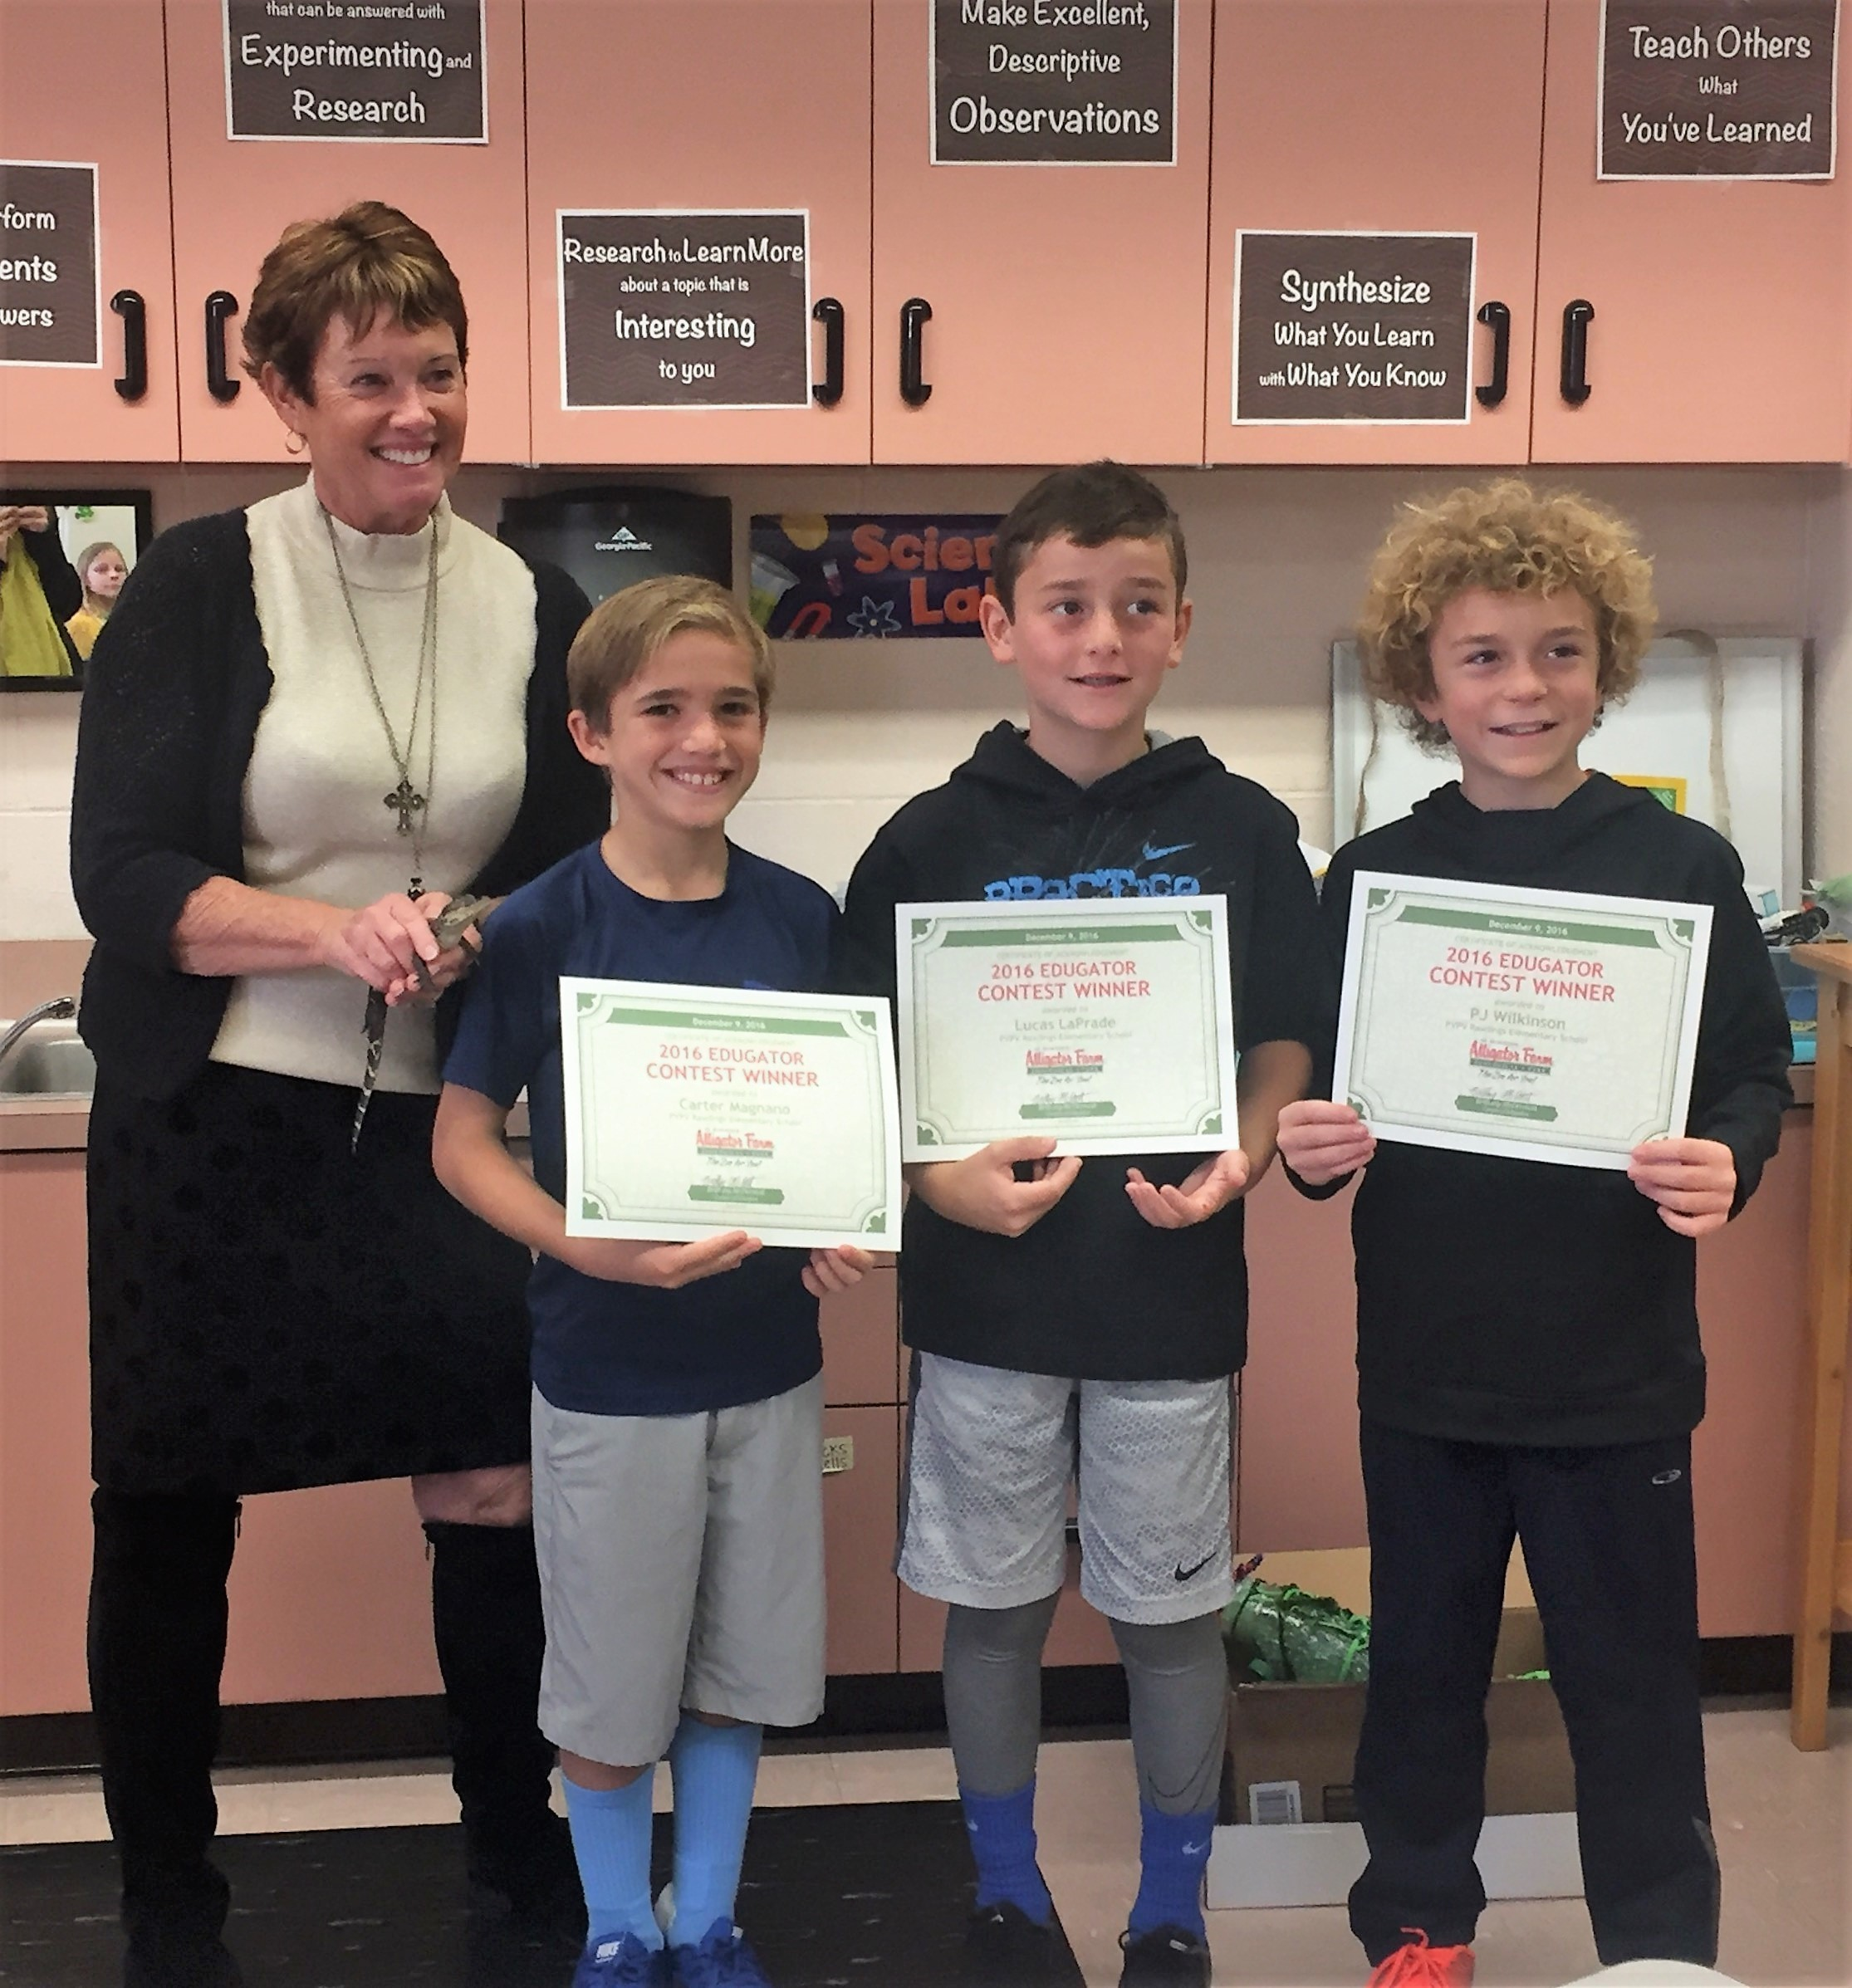 Mrs. Wetmore poses with Carter Magnano, Lucas Laprade and PJ Wilkinson after they received their certificates